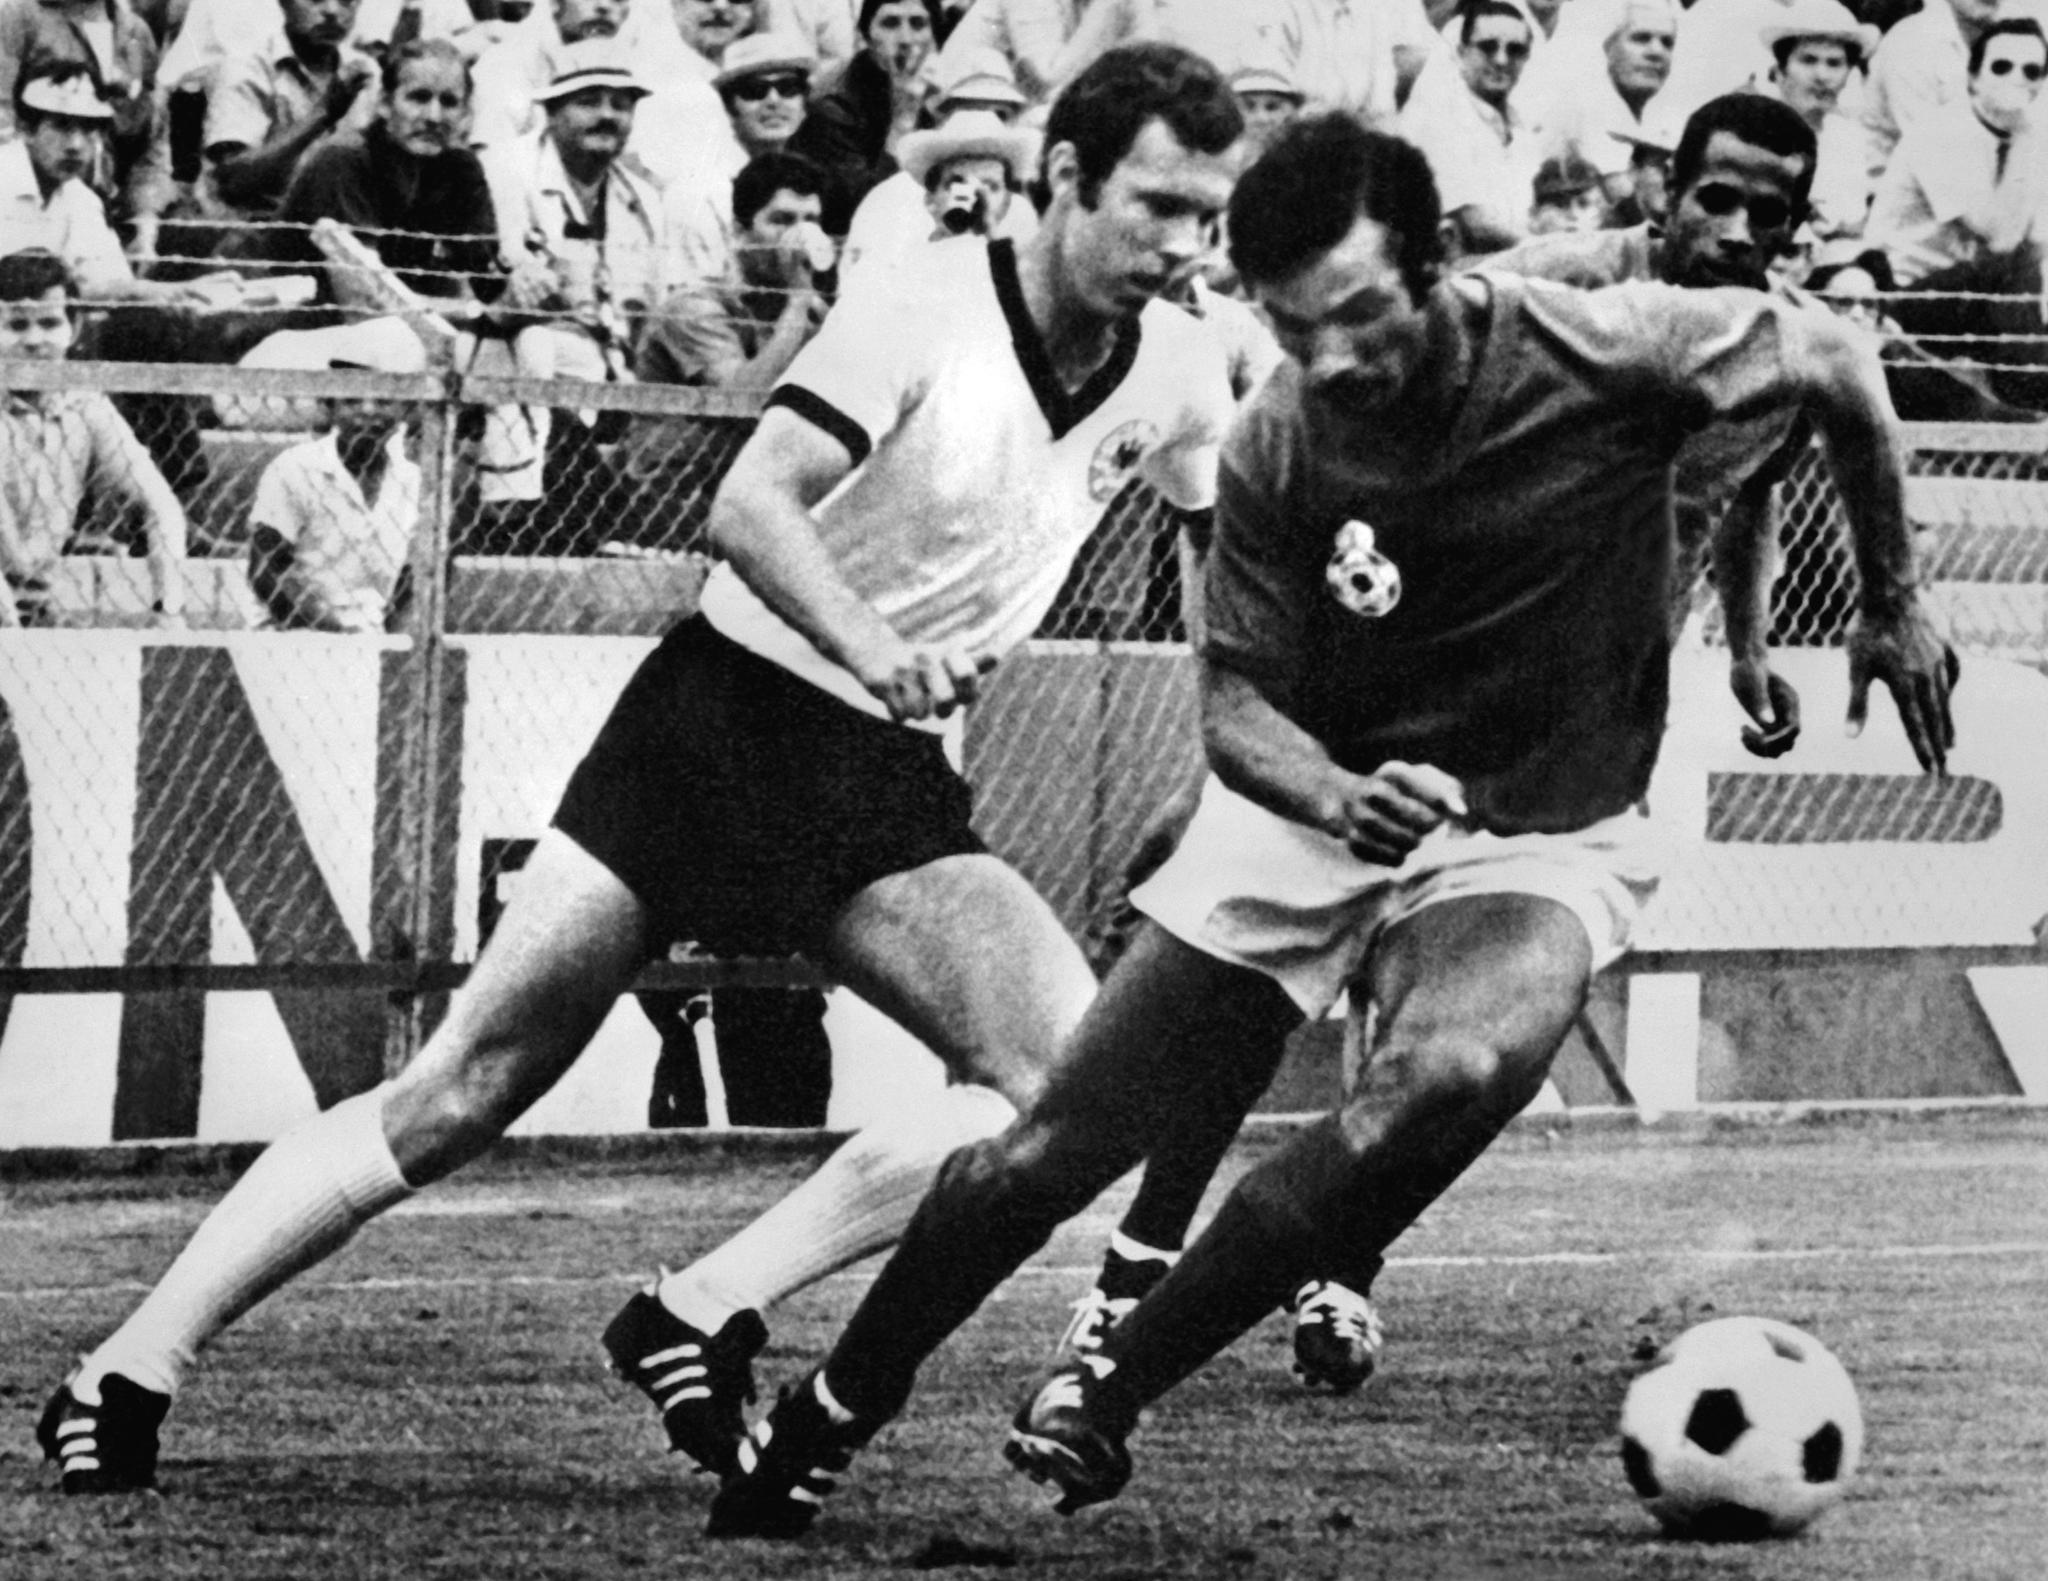 Franz Beckenbauer Benkhrif Boujemaa Mohammed El Filali West Germany Morocco World Cup 1970 03061970